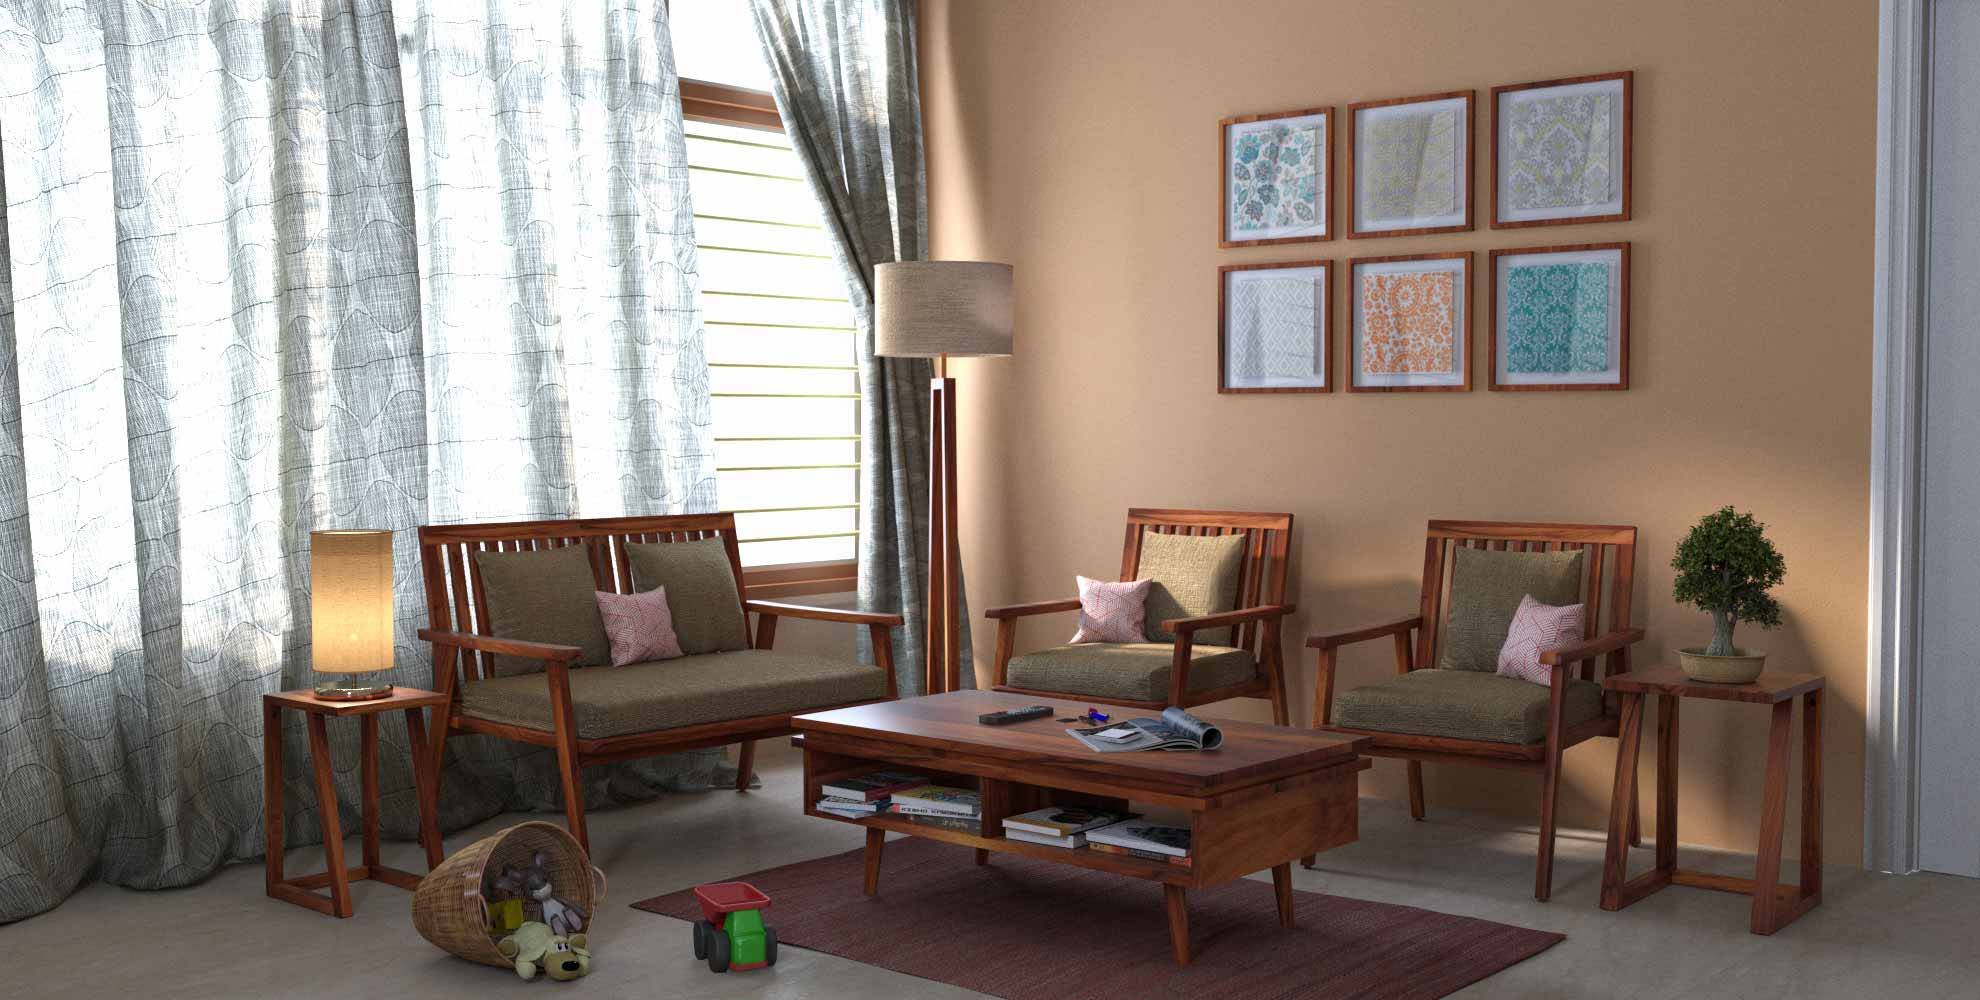 Interior design for home interior designers bangalore Images of home interior